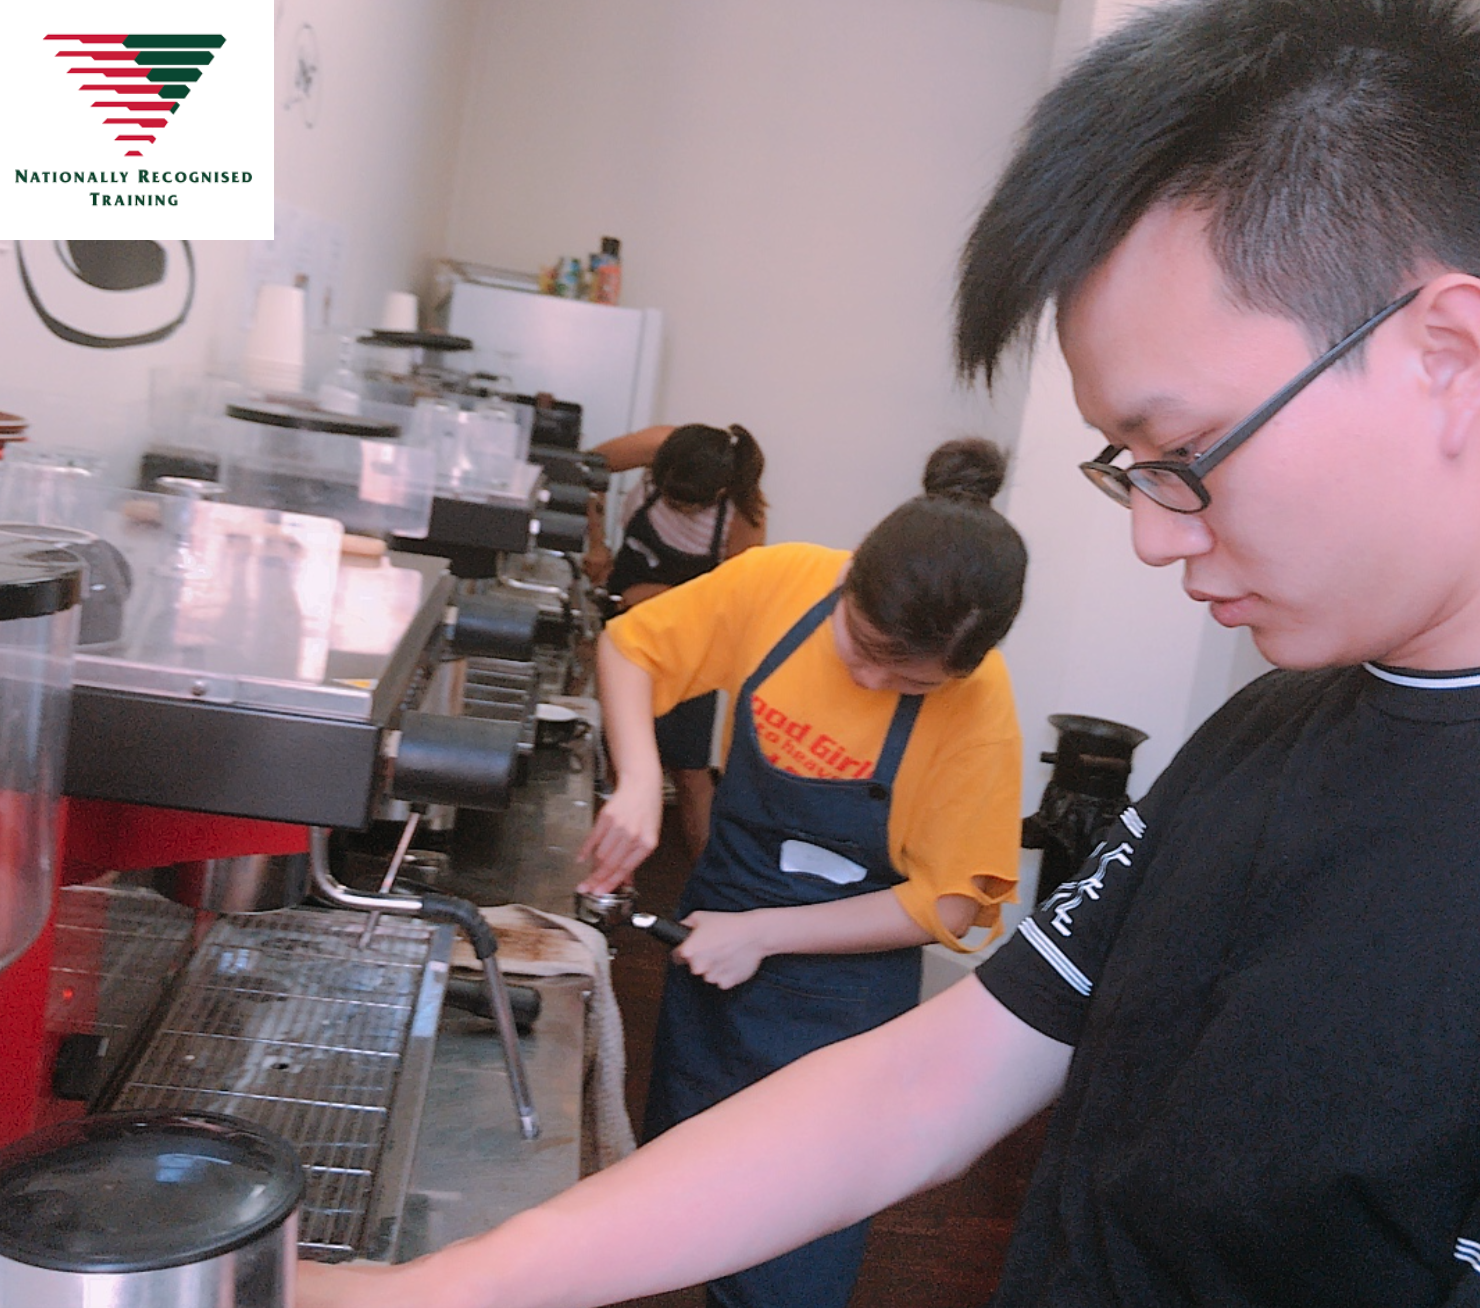 Nationally Recognised Barista Course (Accredited)